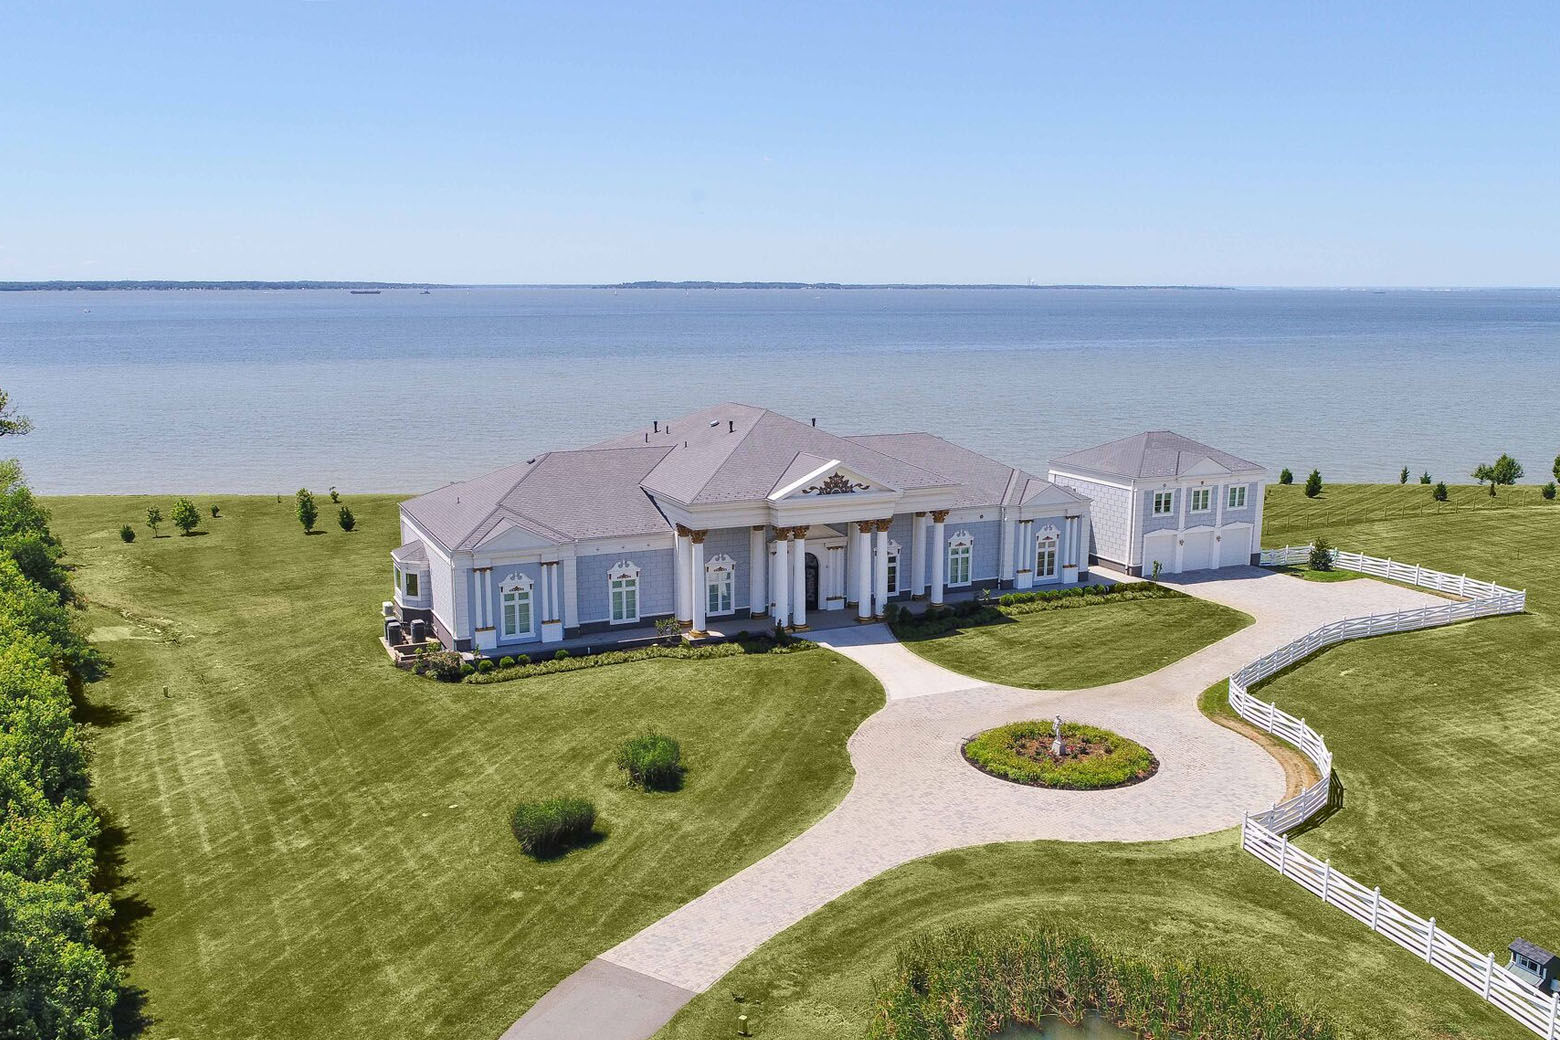 The Love Point estate sits on private land overlooking the Chesapeake Bay. (Courtesy Phil and Victoria Gerdes)